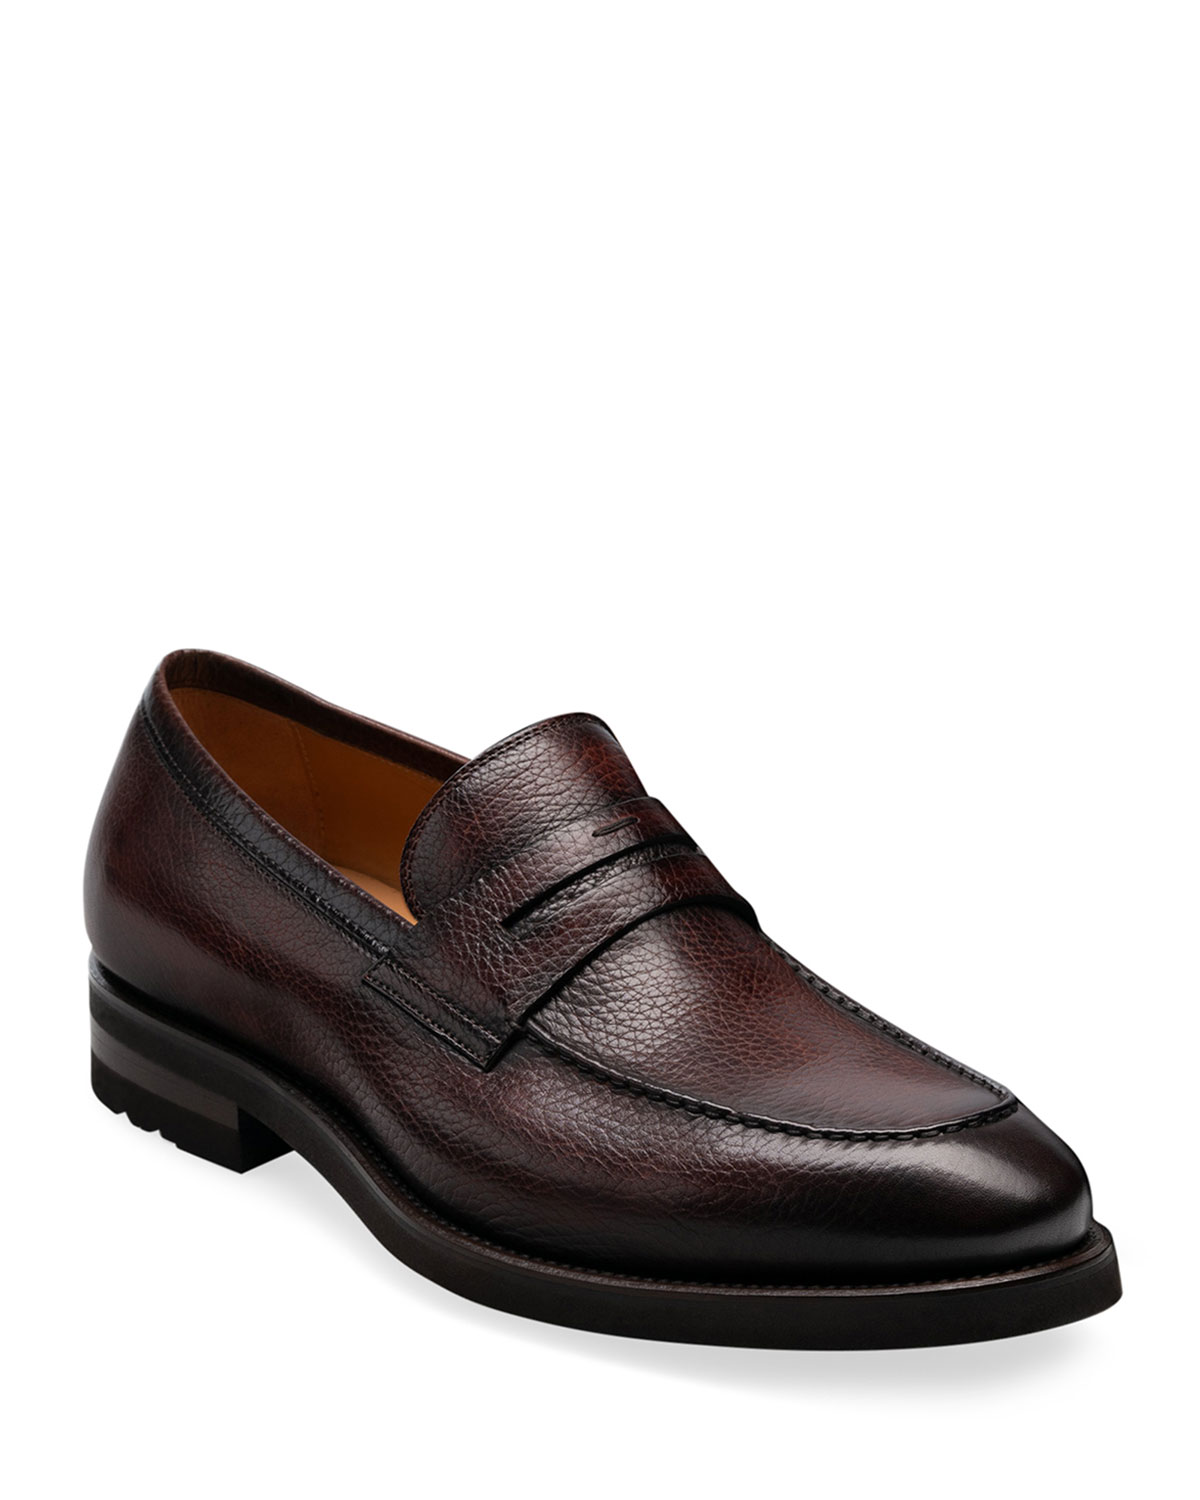 Men's Matlin II Pebbled Leather Penny Loafers